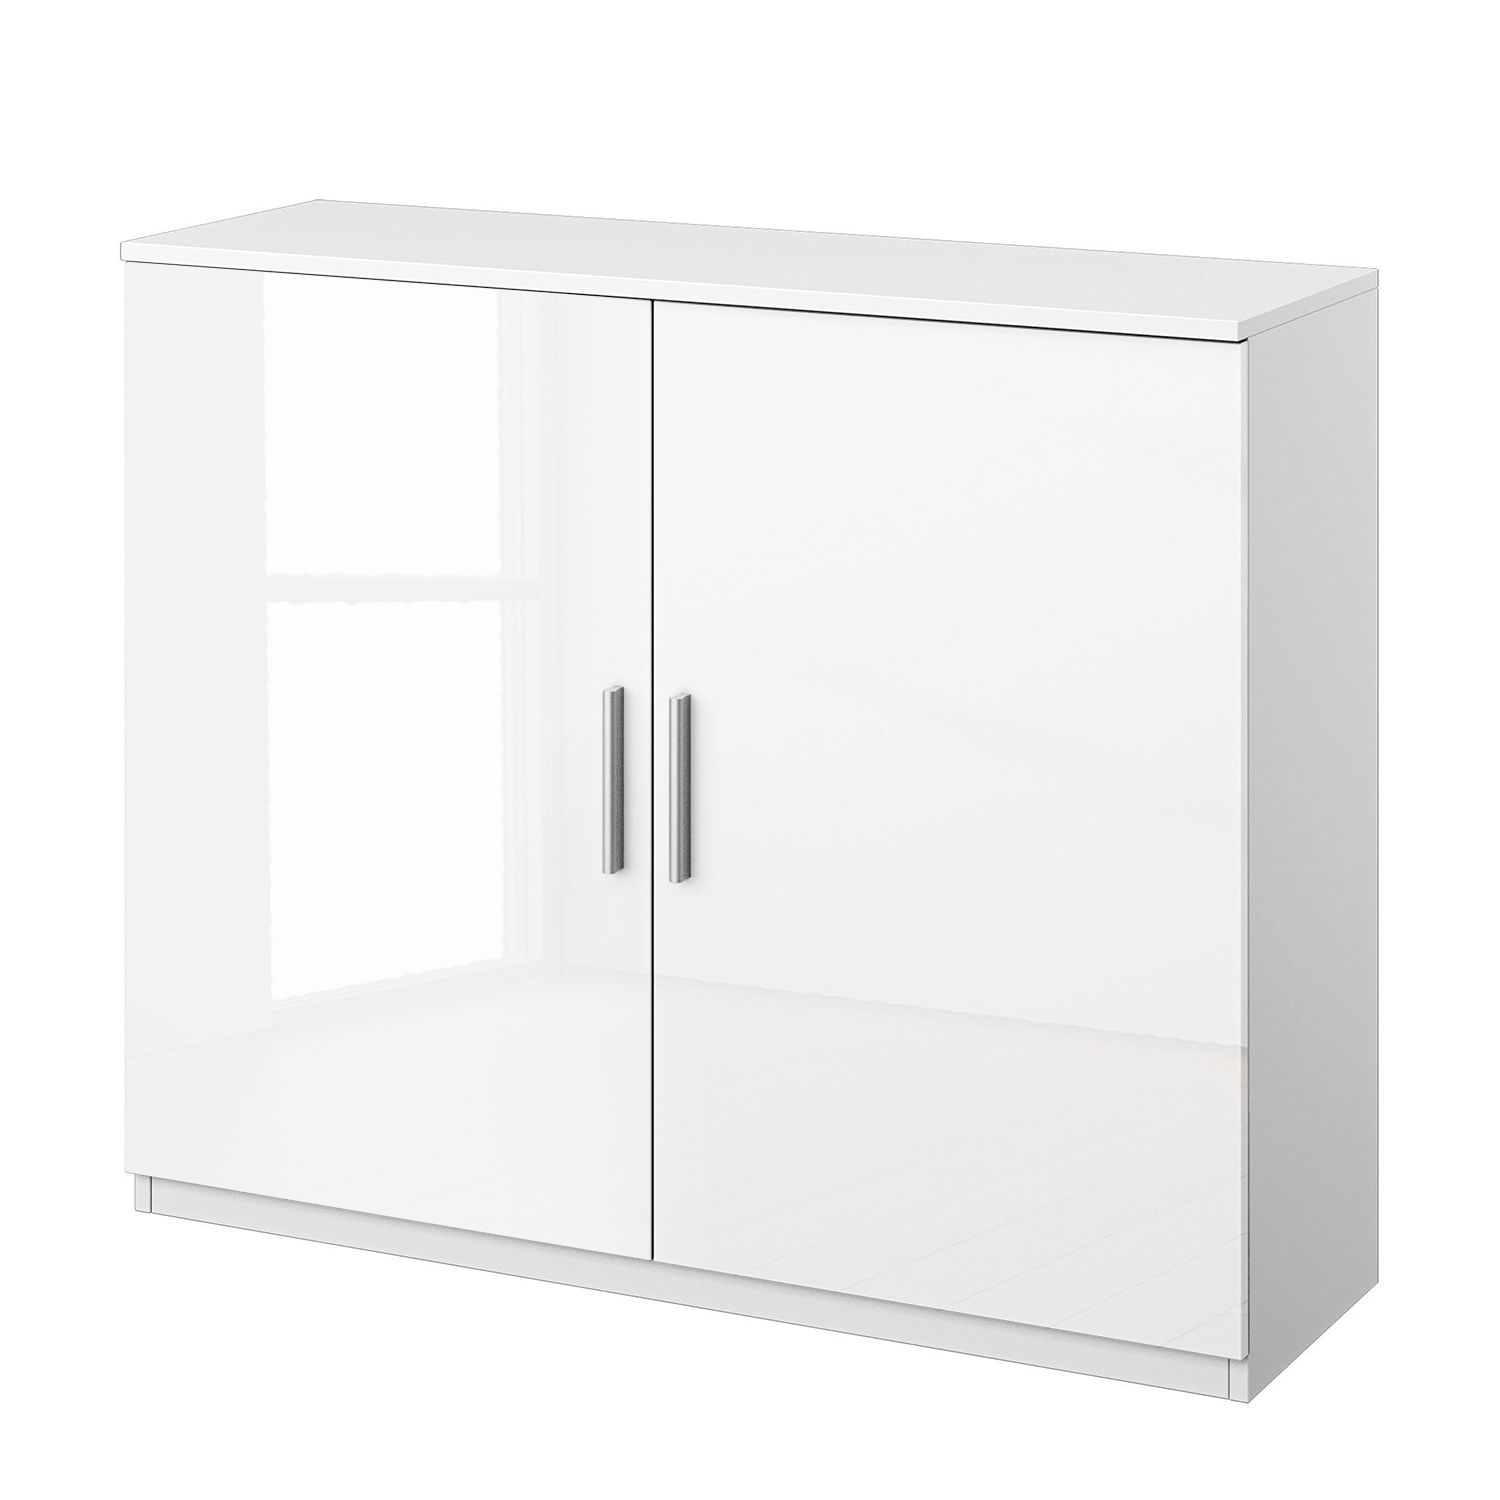 Commode Celle I - Blanc alpin / Blanc brillant, Rauch Packs